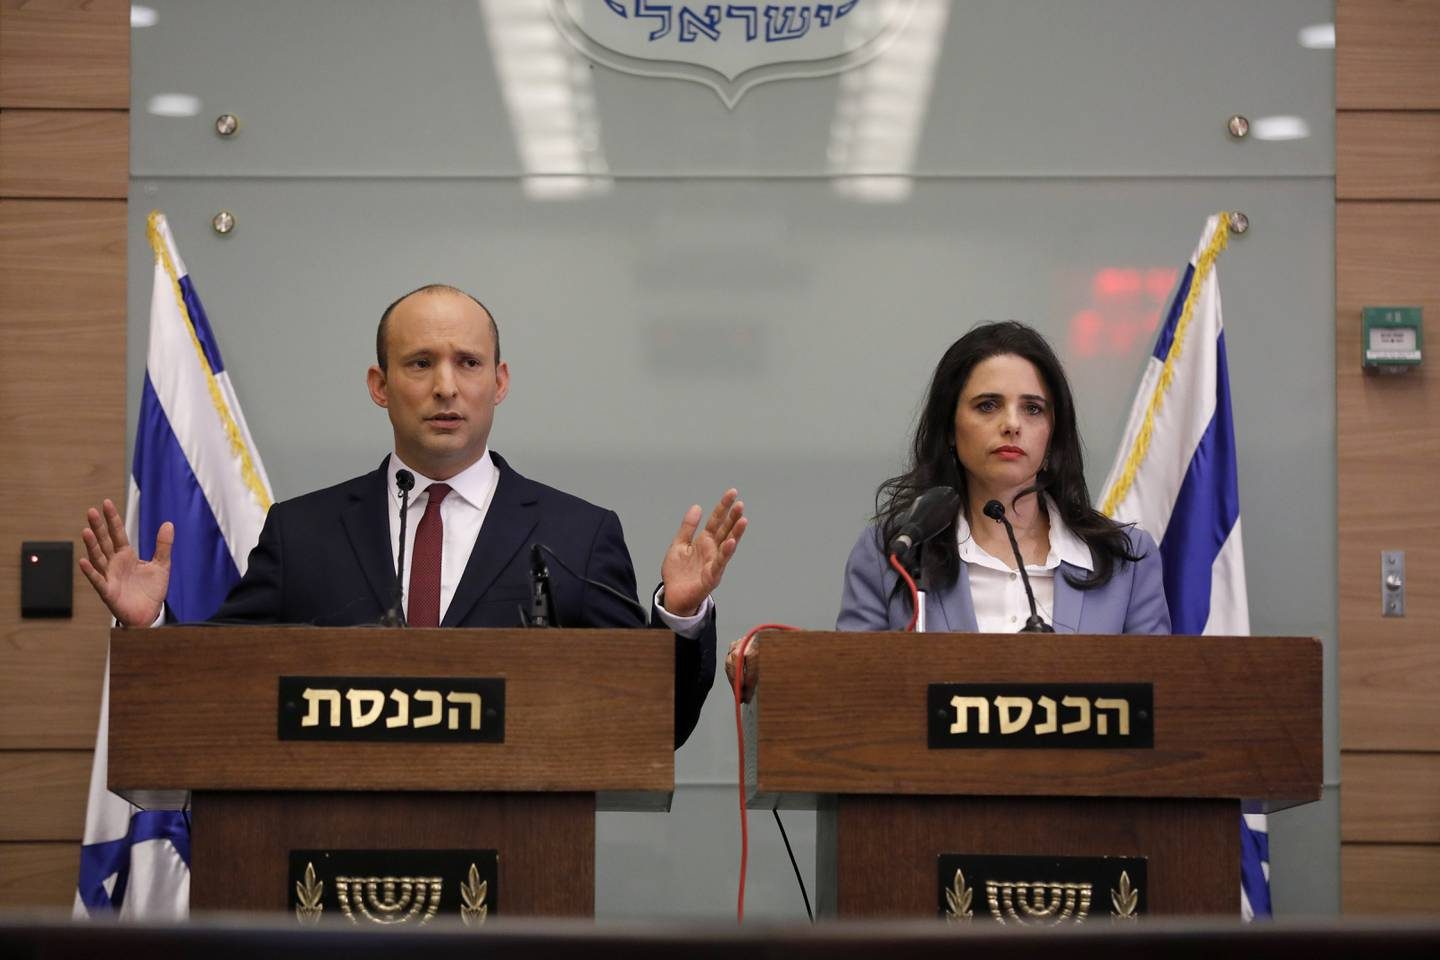 epa07176691 Israeli Minister of Education Naftali Bennett (L) and Justice Minister Ayelet Shaked speak during a press conference in the Israeli Knesset, (Israeli Parliament), in Jerusalem, 19 November 2018. Media reports state that the Netanyahu government will not go to early elections after Naftali Bennett and Ayelet Shaked of the Jewish Home Party decided not to resign from the coalition. The elections are scheduled to take place in November 2019  EPA/ABIR SULTAN